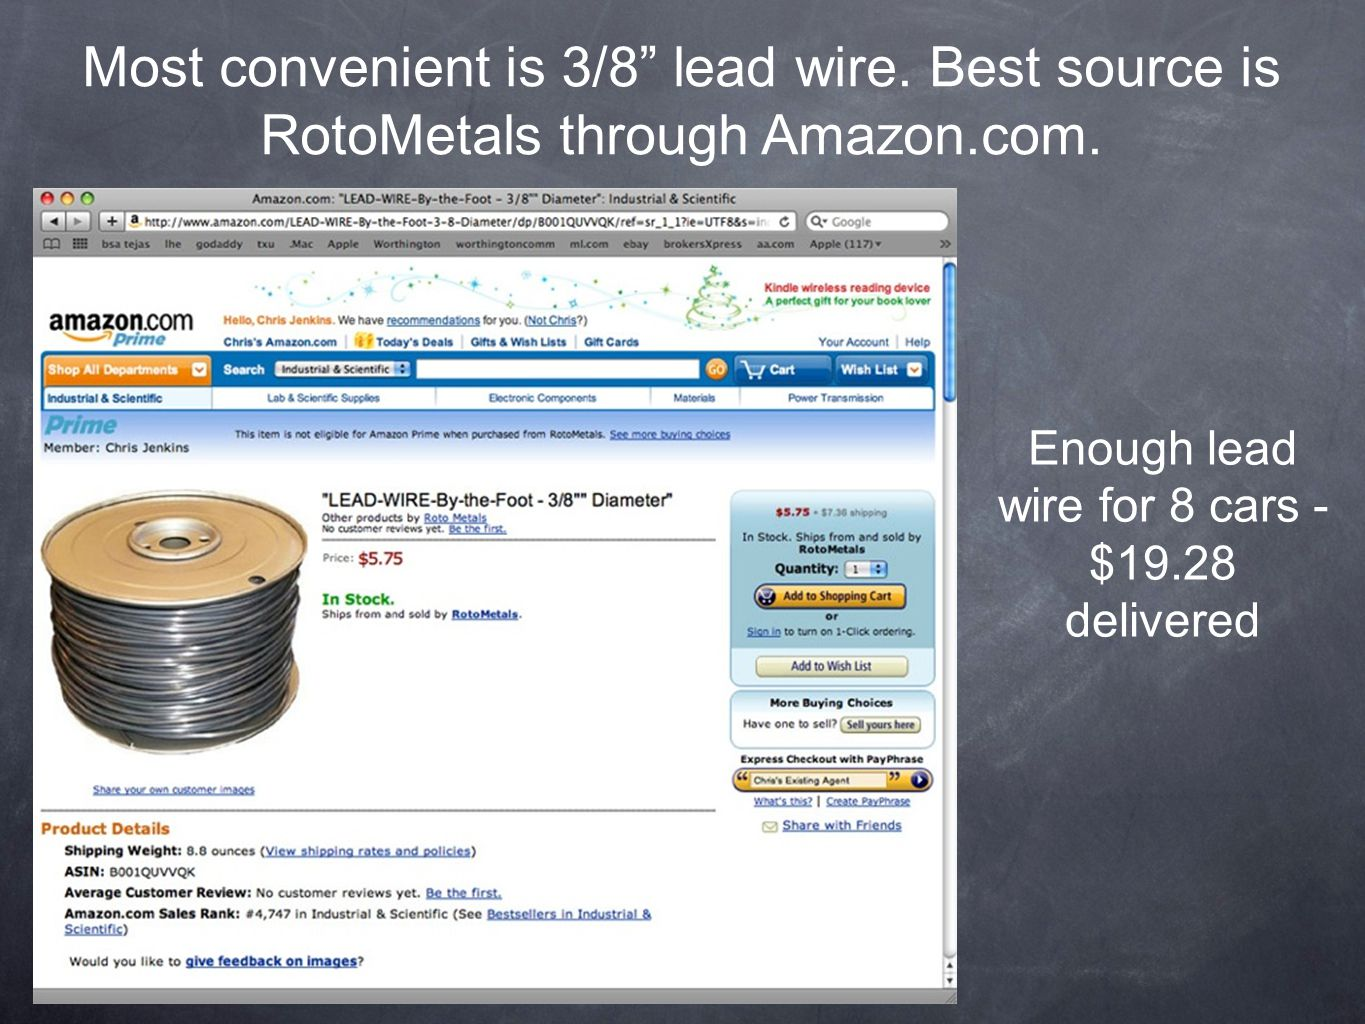 "Most convenient is 3/8"" lead wire. Best source is RotoMetals through Amazon.com. Enough lead wire for 8 cars - $19.28 delivered"